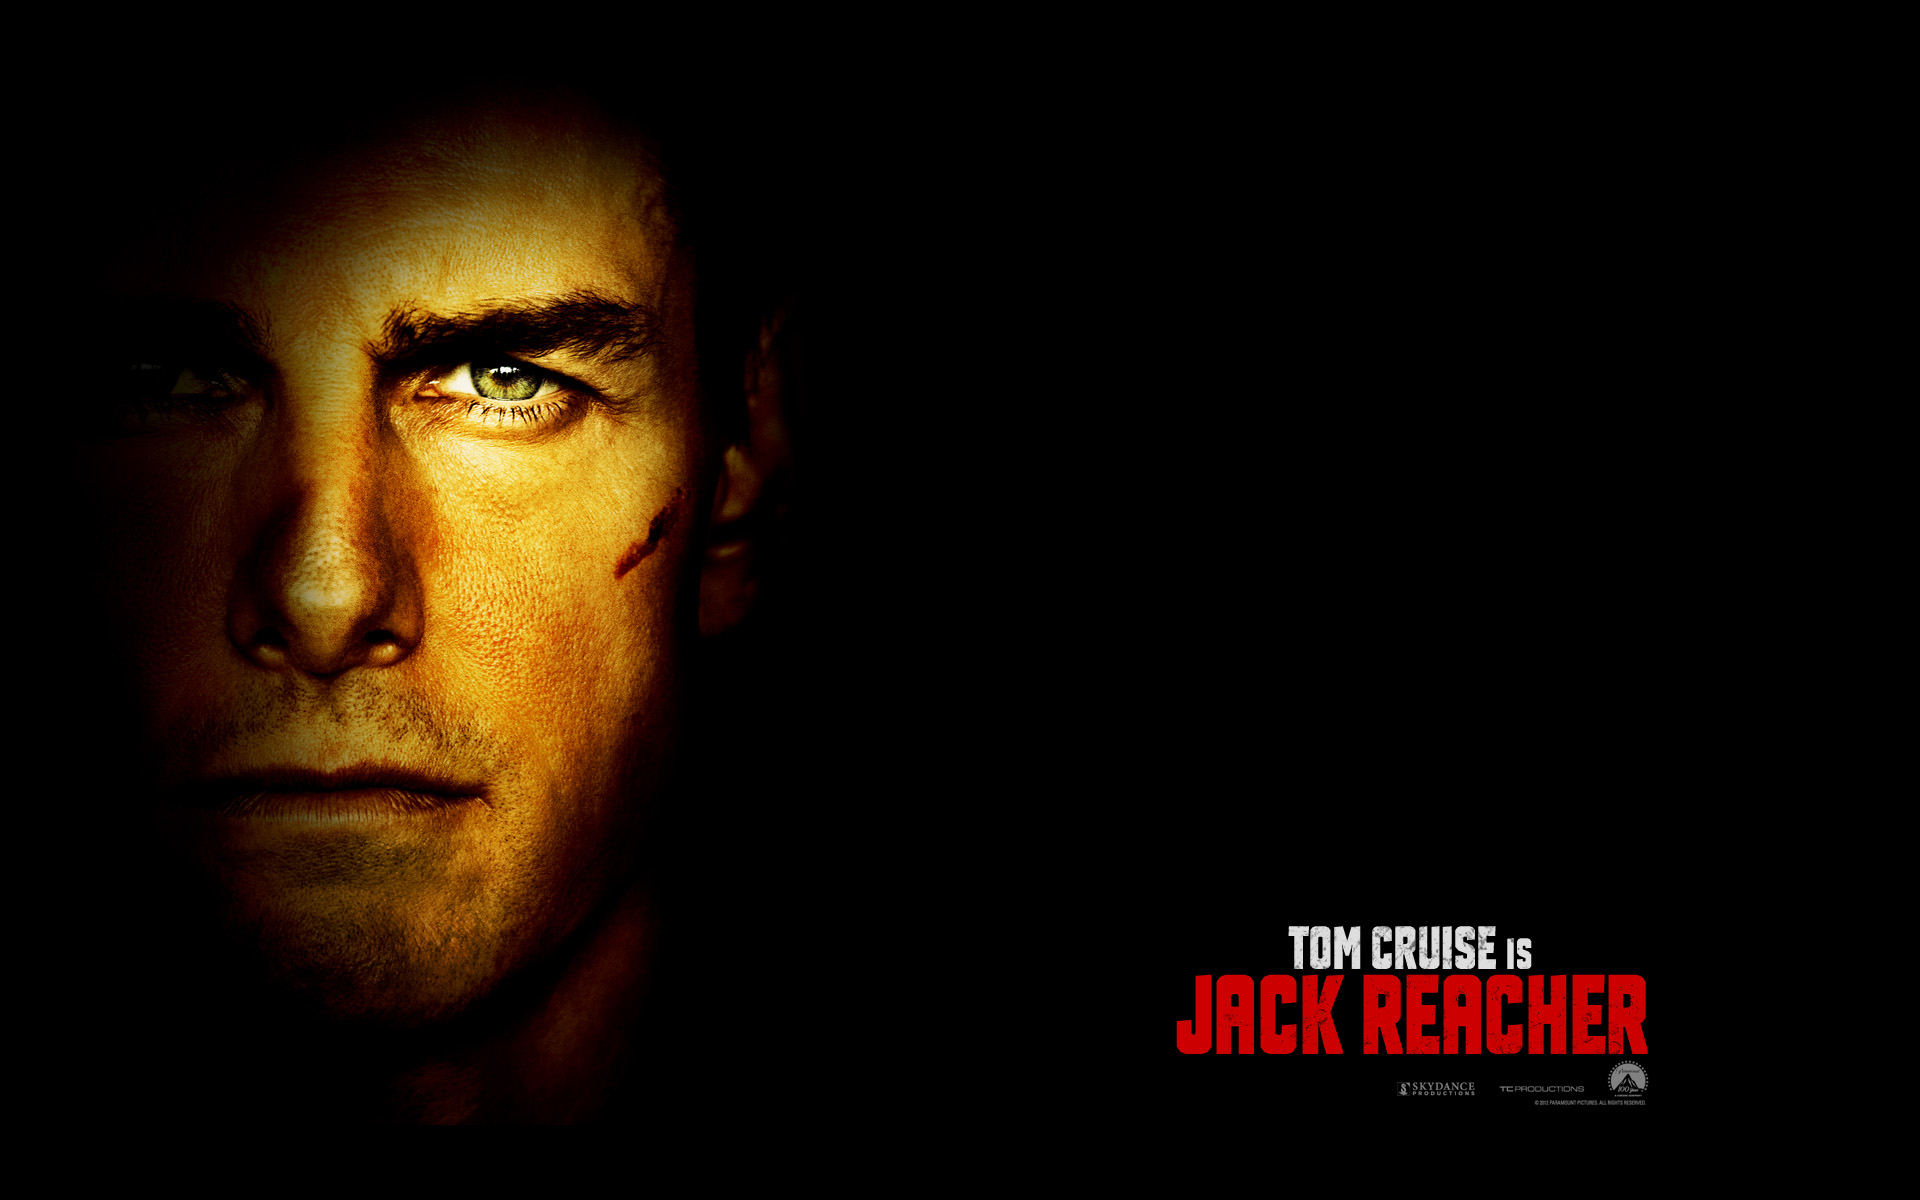 Jack Reacher wallpapers starring Tom Cruise Movie Wallpapers 1920x1200